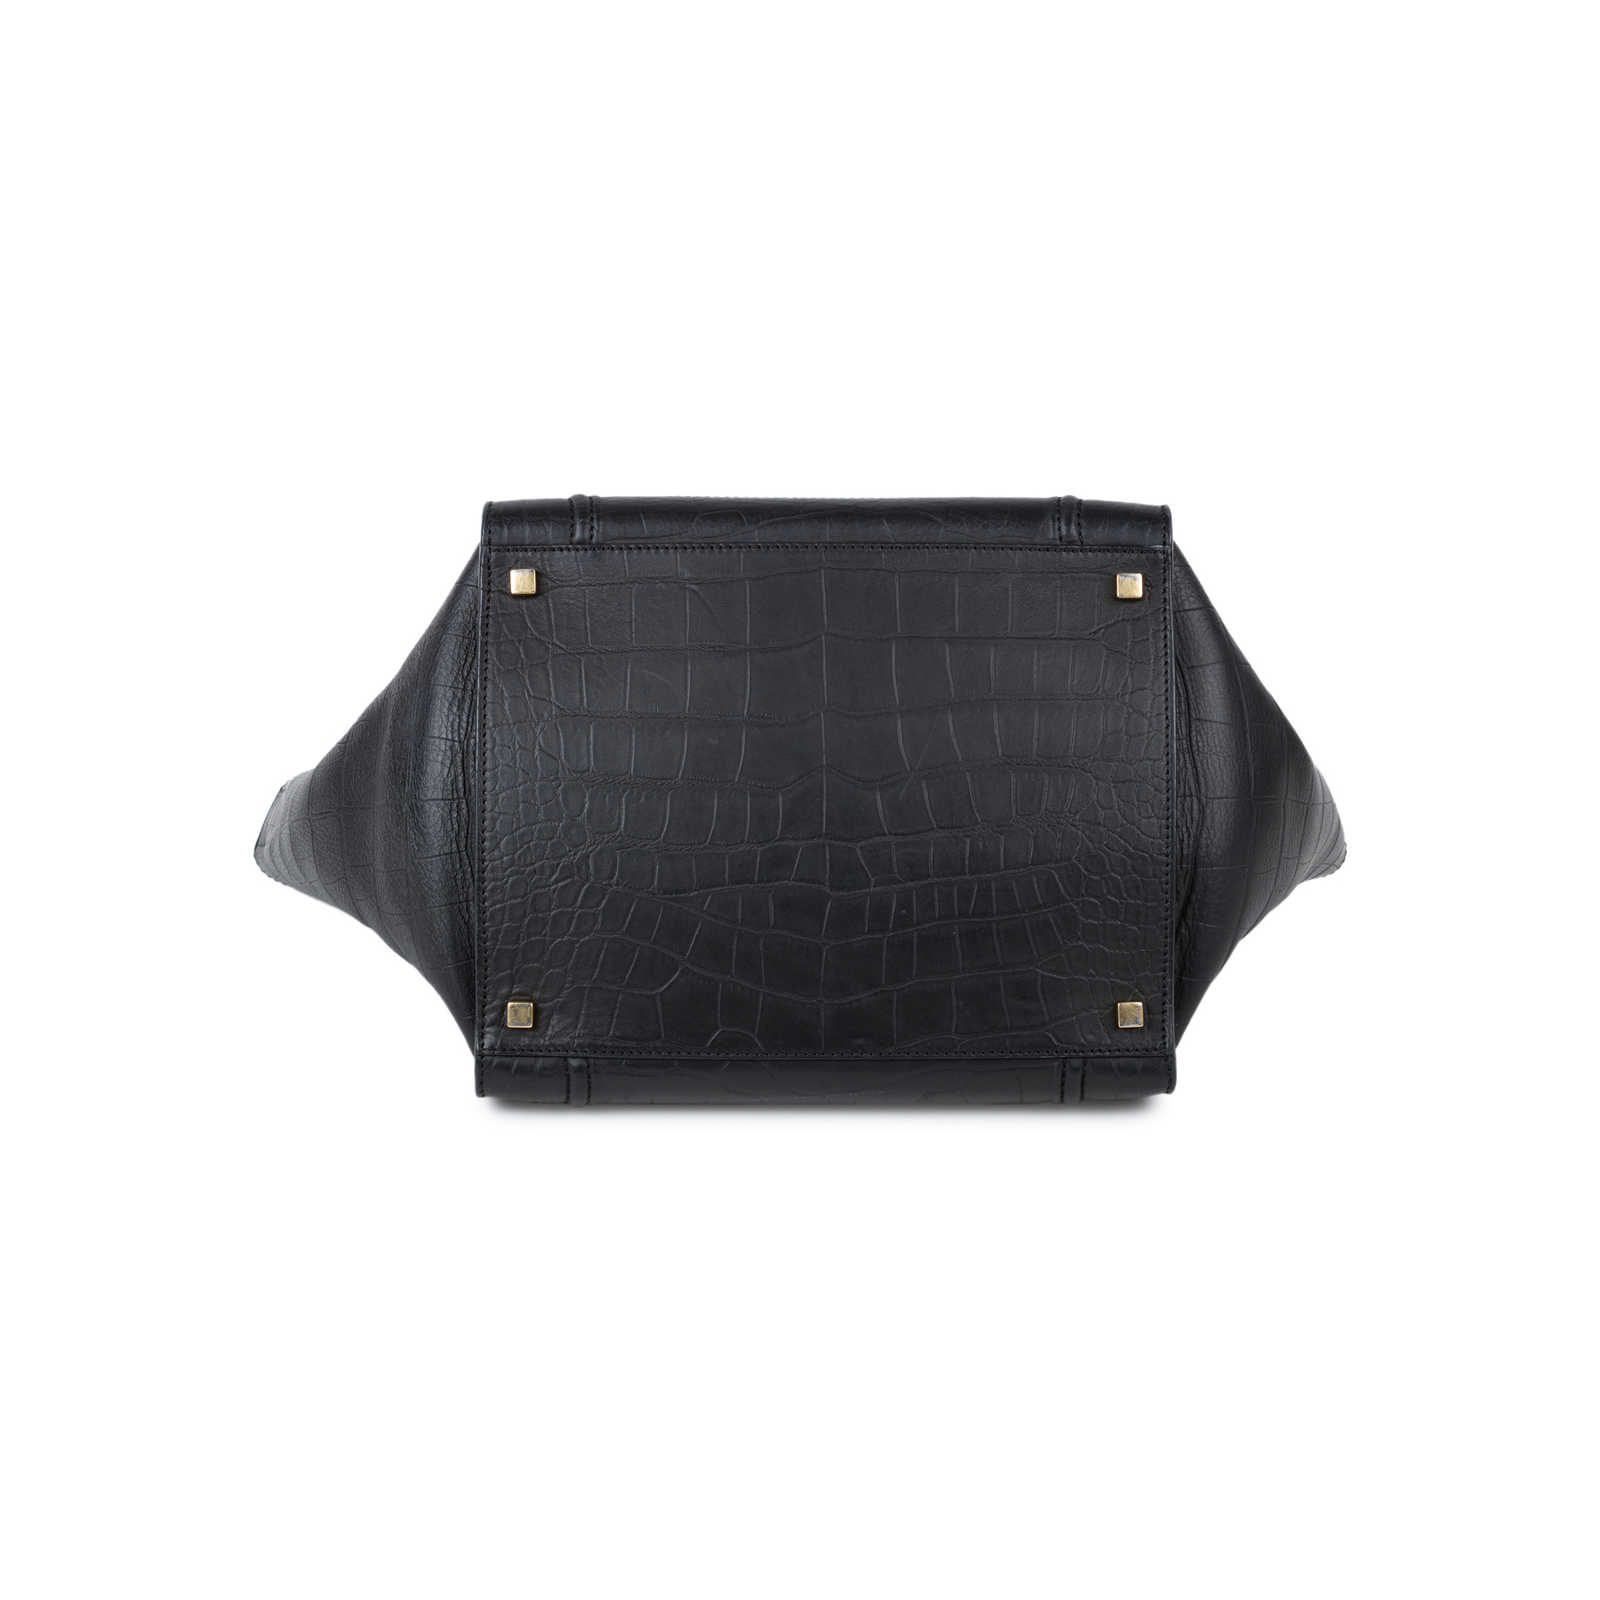 6a35a3ebeaaf ... Authentic Second Hand Céline Crocodile Embossed Phantom Luggage Tote  (PSS-553-00002) ...